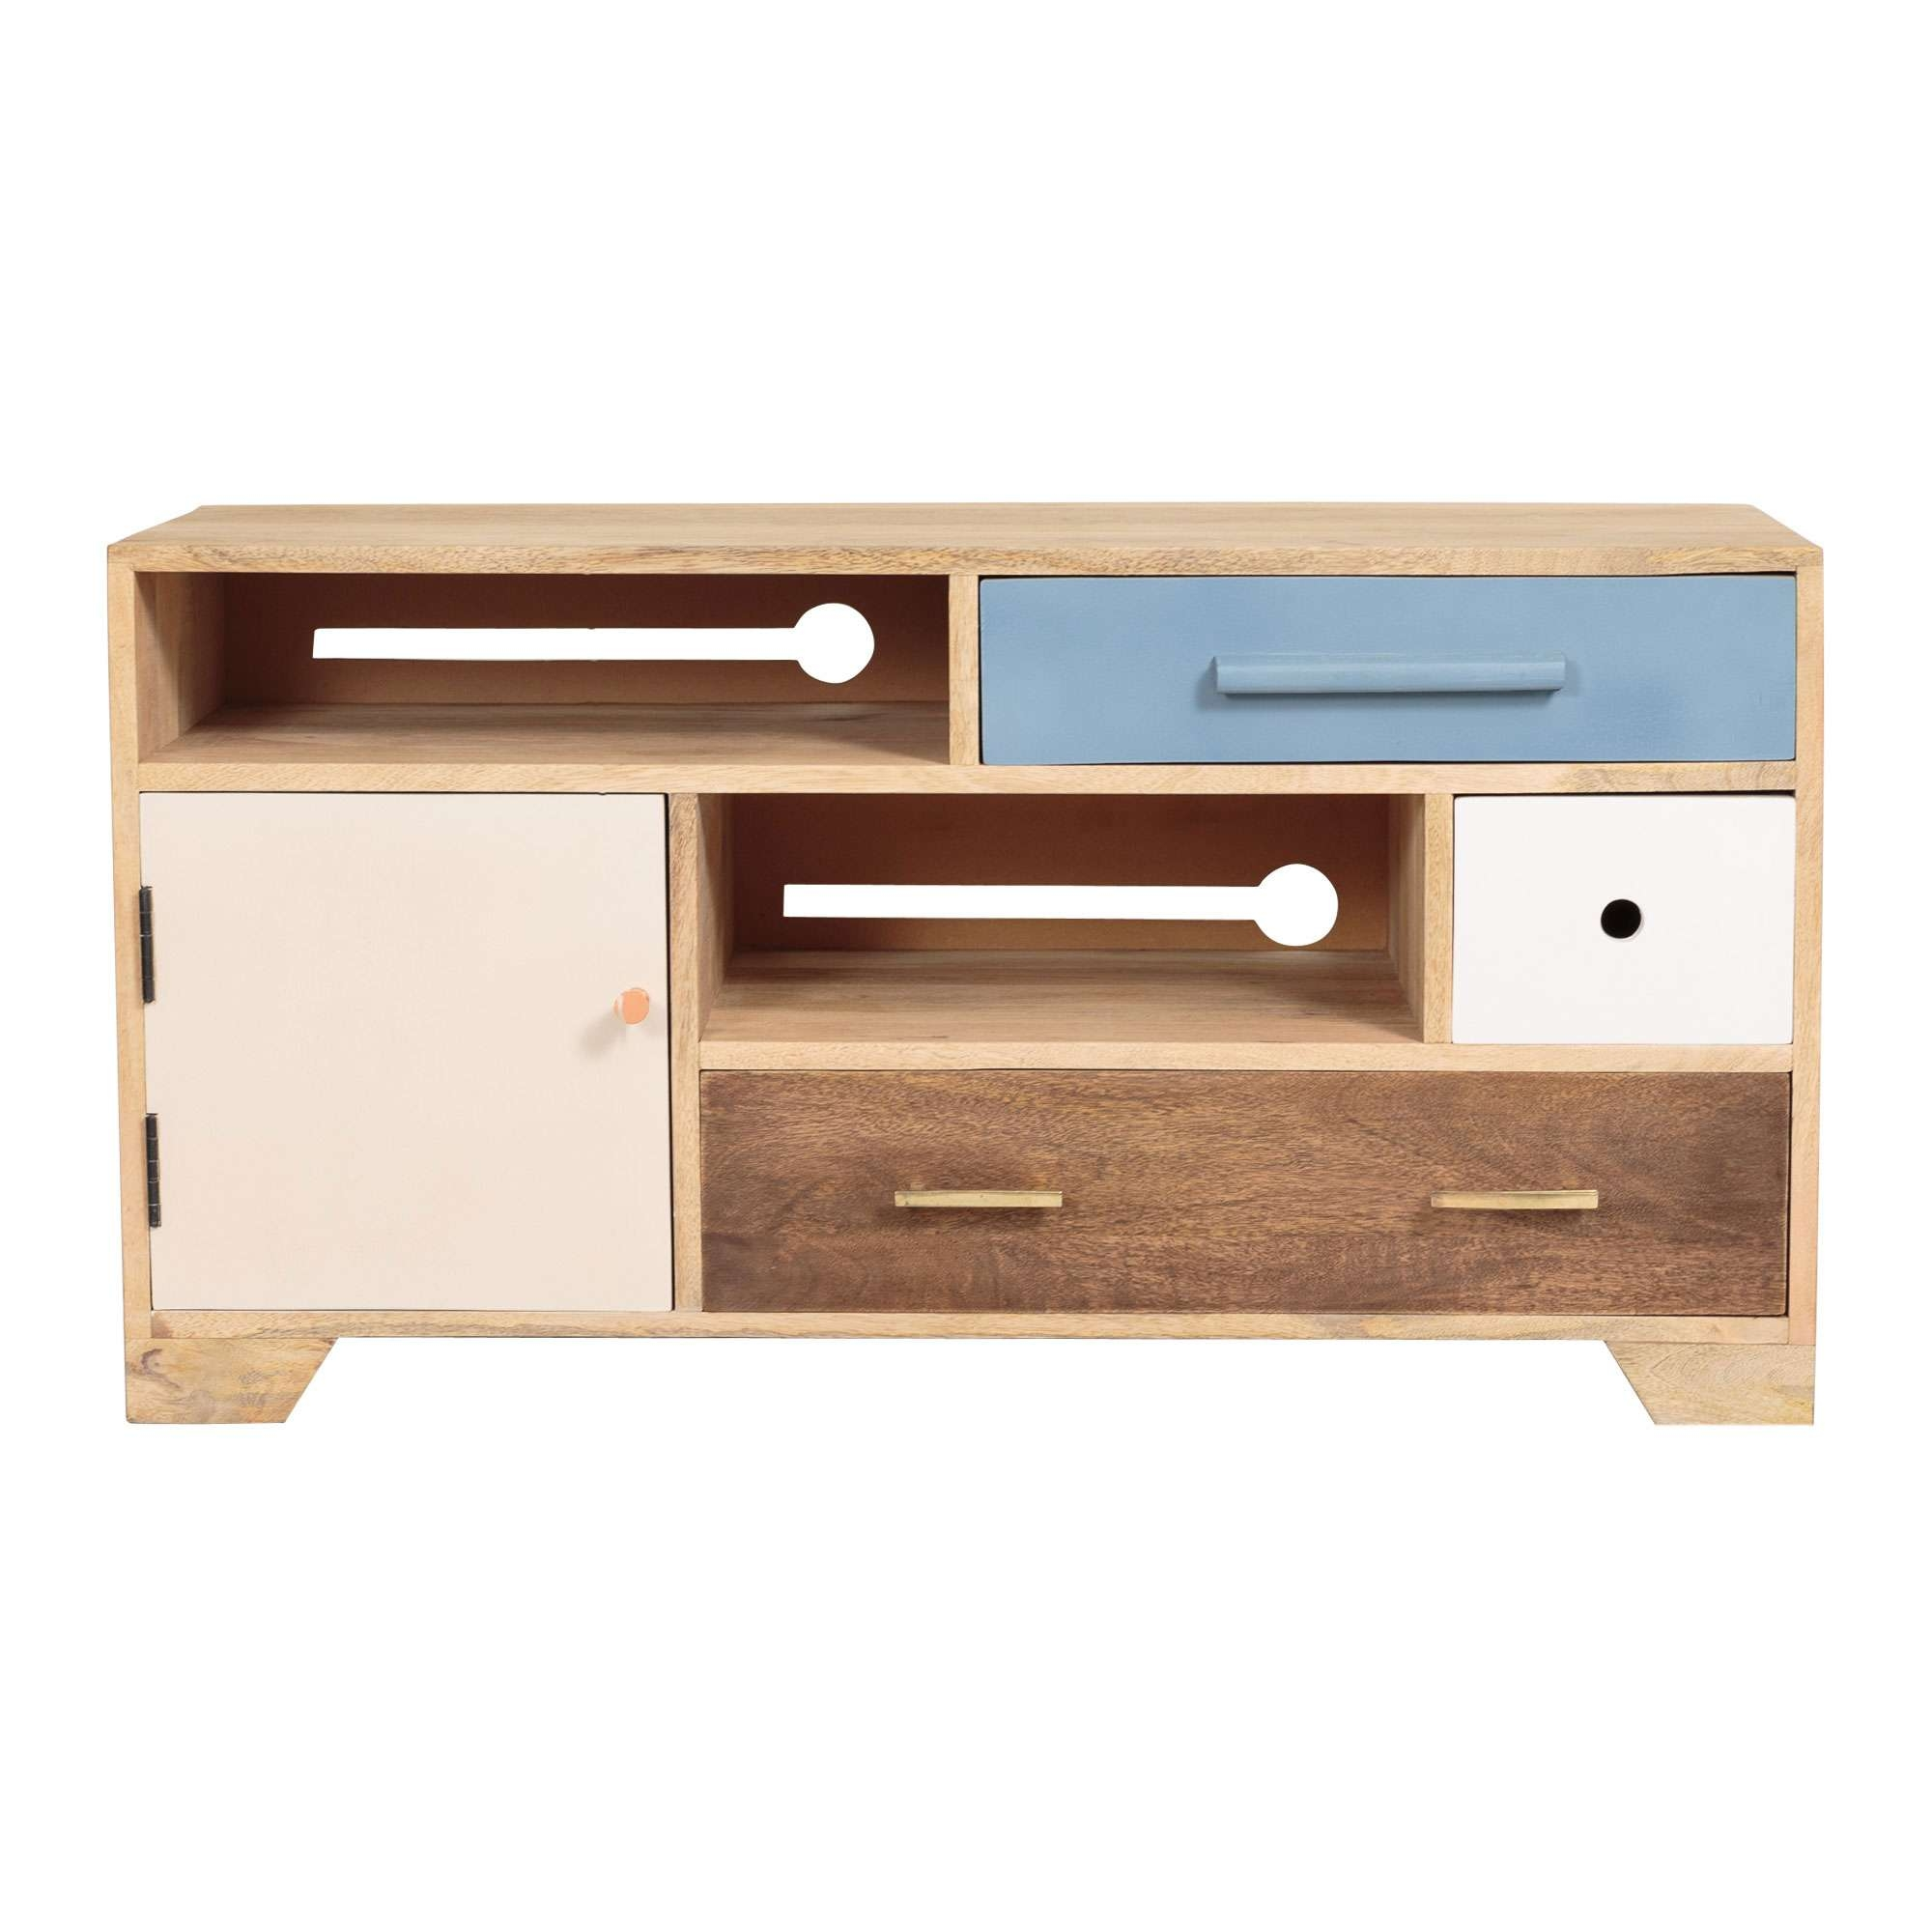 Jennifer Wooden Tv Cabinet | Oliver Bonas With Regard To Wooden Tv Cabinets (View 8 of 20)